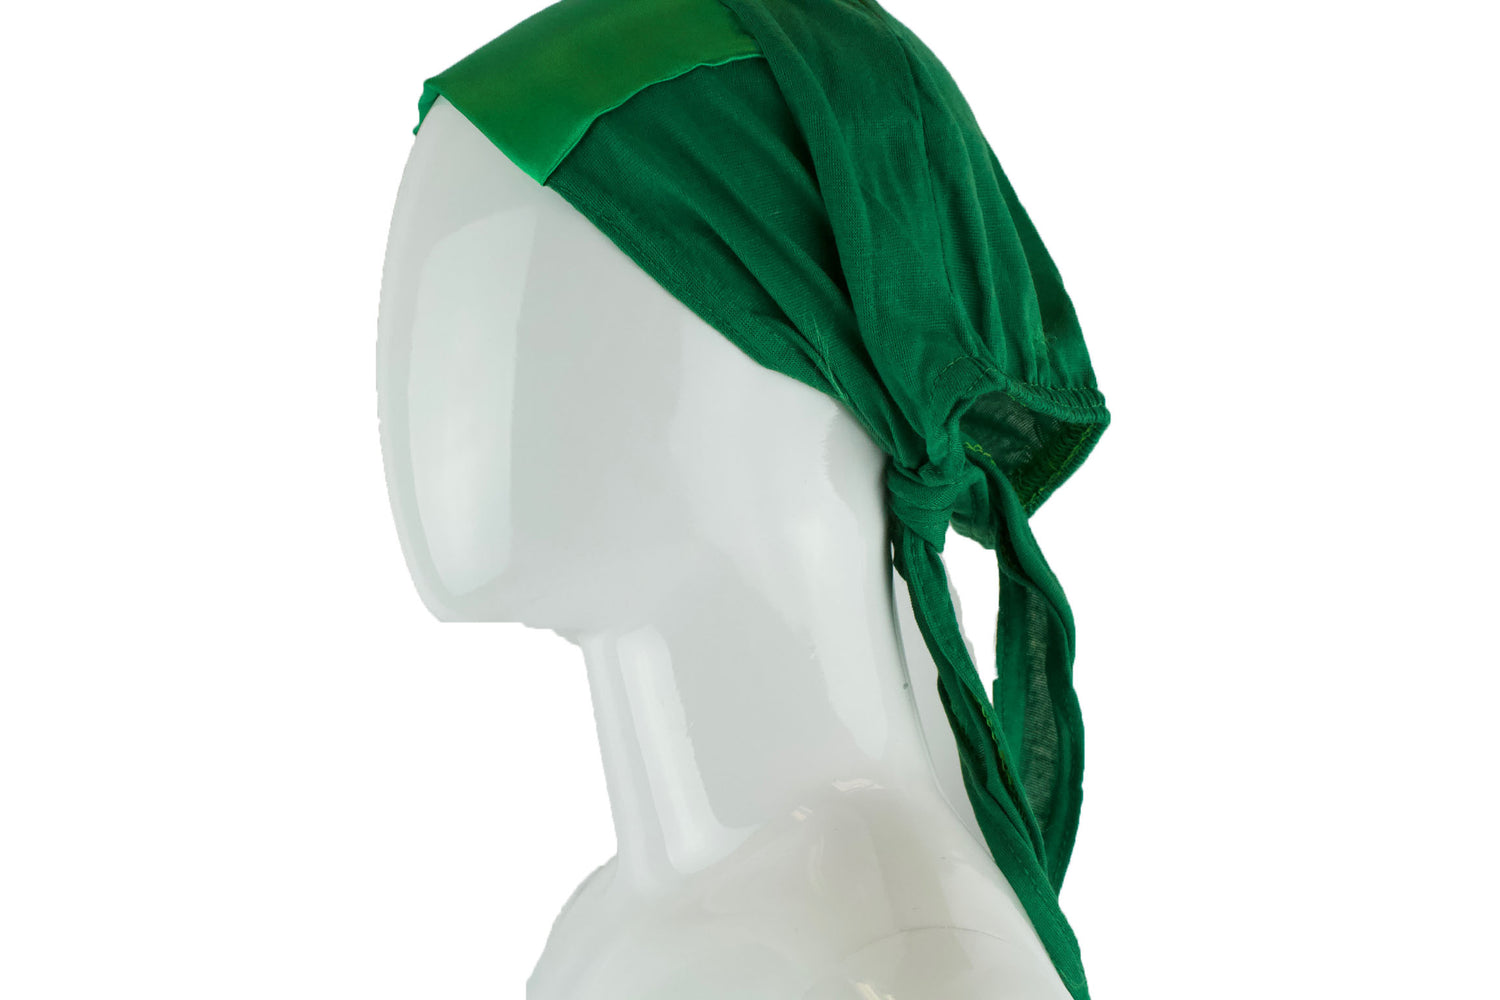 Satin Trim Tie Back Under Cap - Green